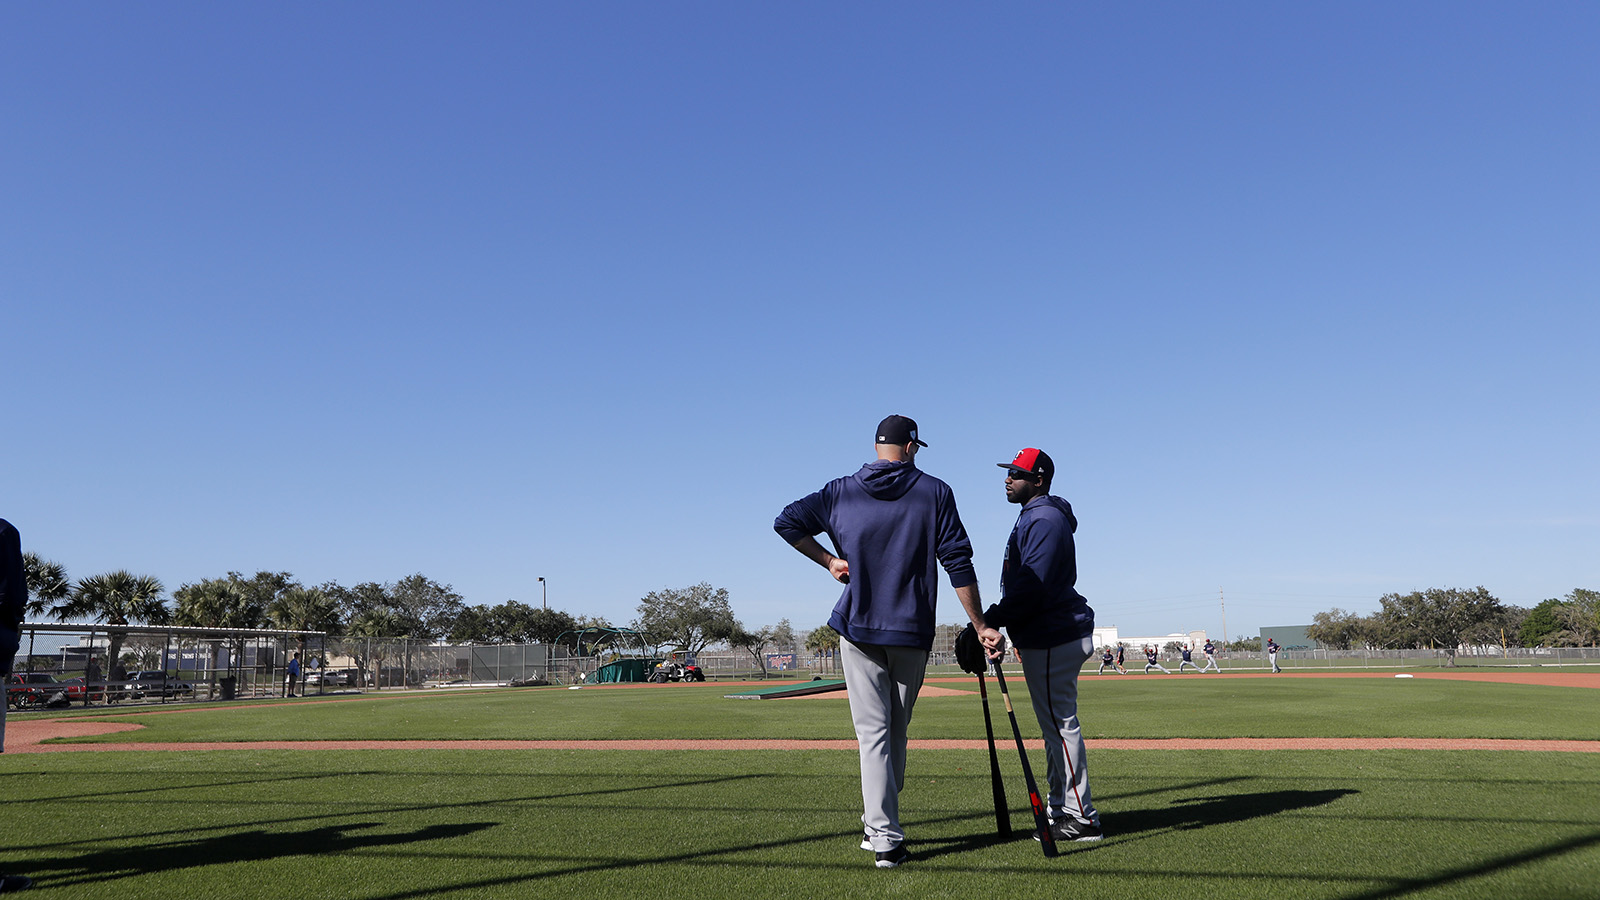 Minnesota Twins manager Rocco Baldelli, left, talks with first base coach Tommy Watkins, as pitchers and catchers report for their first workout at their spring training baseball facility in Ft. Myers, Fla., Thursday, Feb. 14, 2019. (AP Photo/Gerald Herbert)